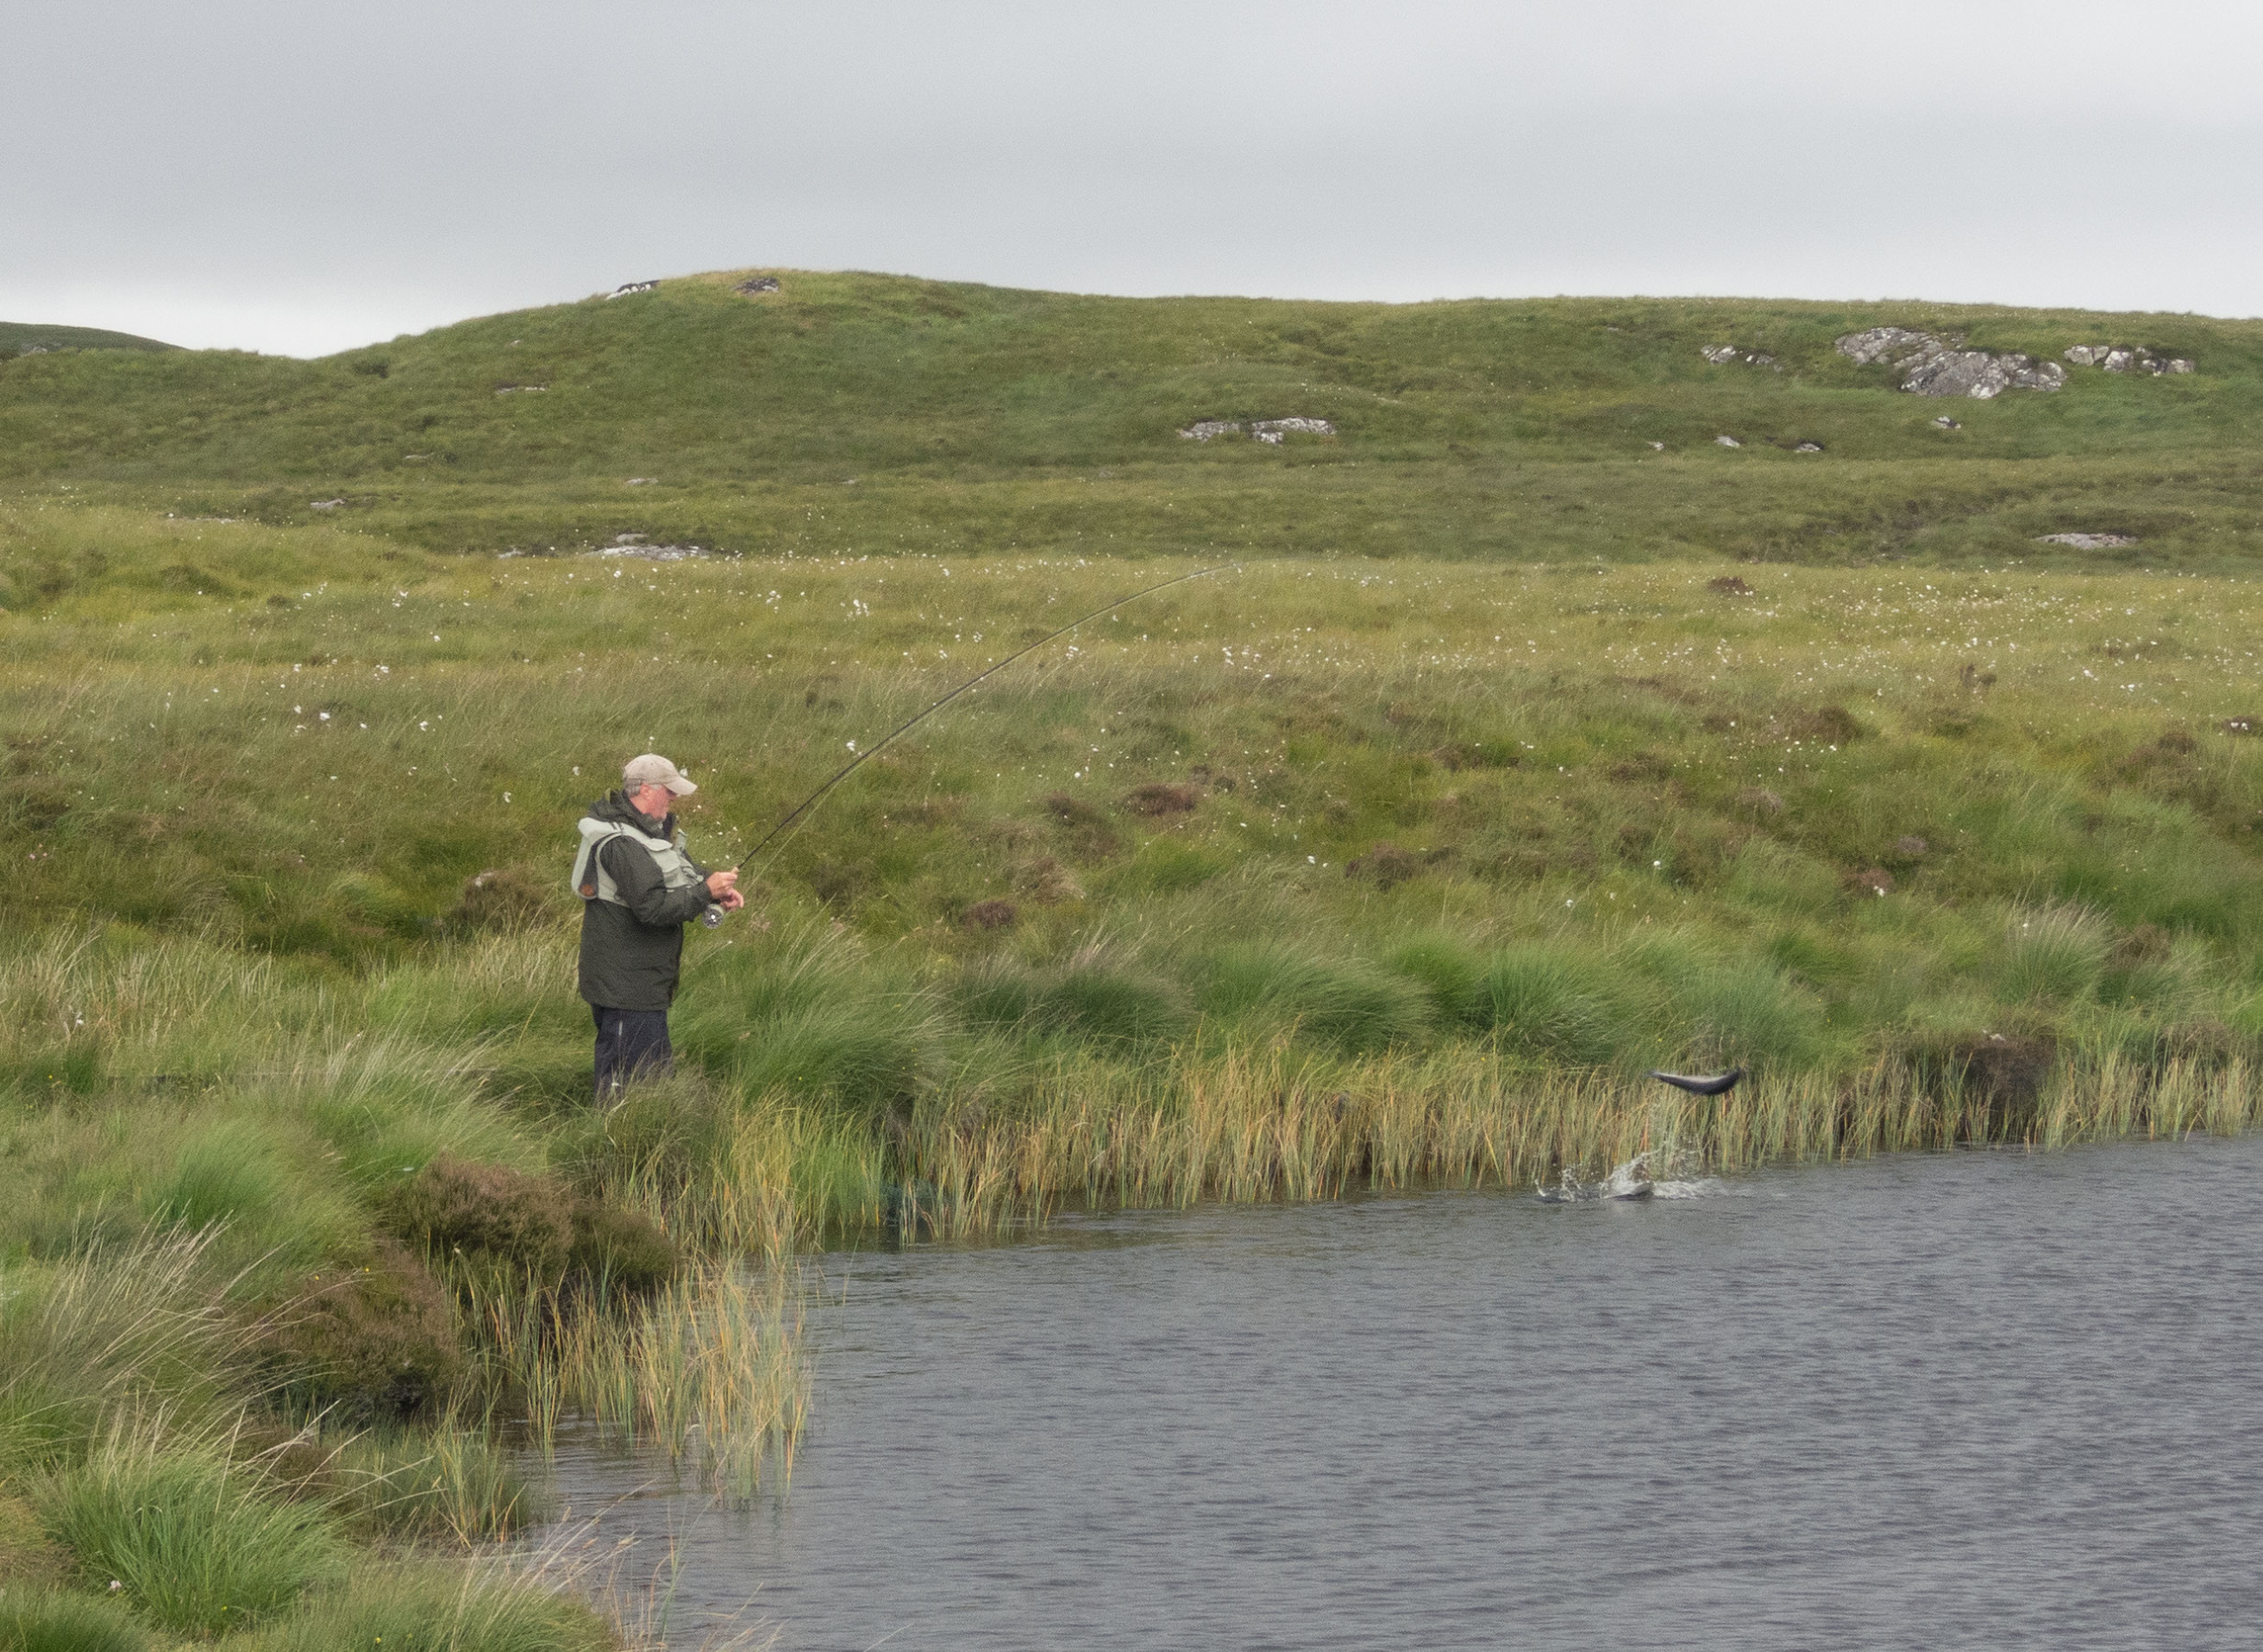 Isle of Lewis angler fighting a salmon